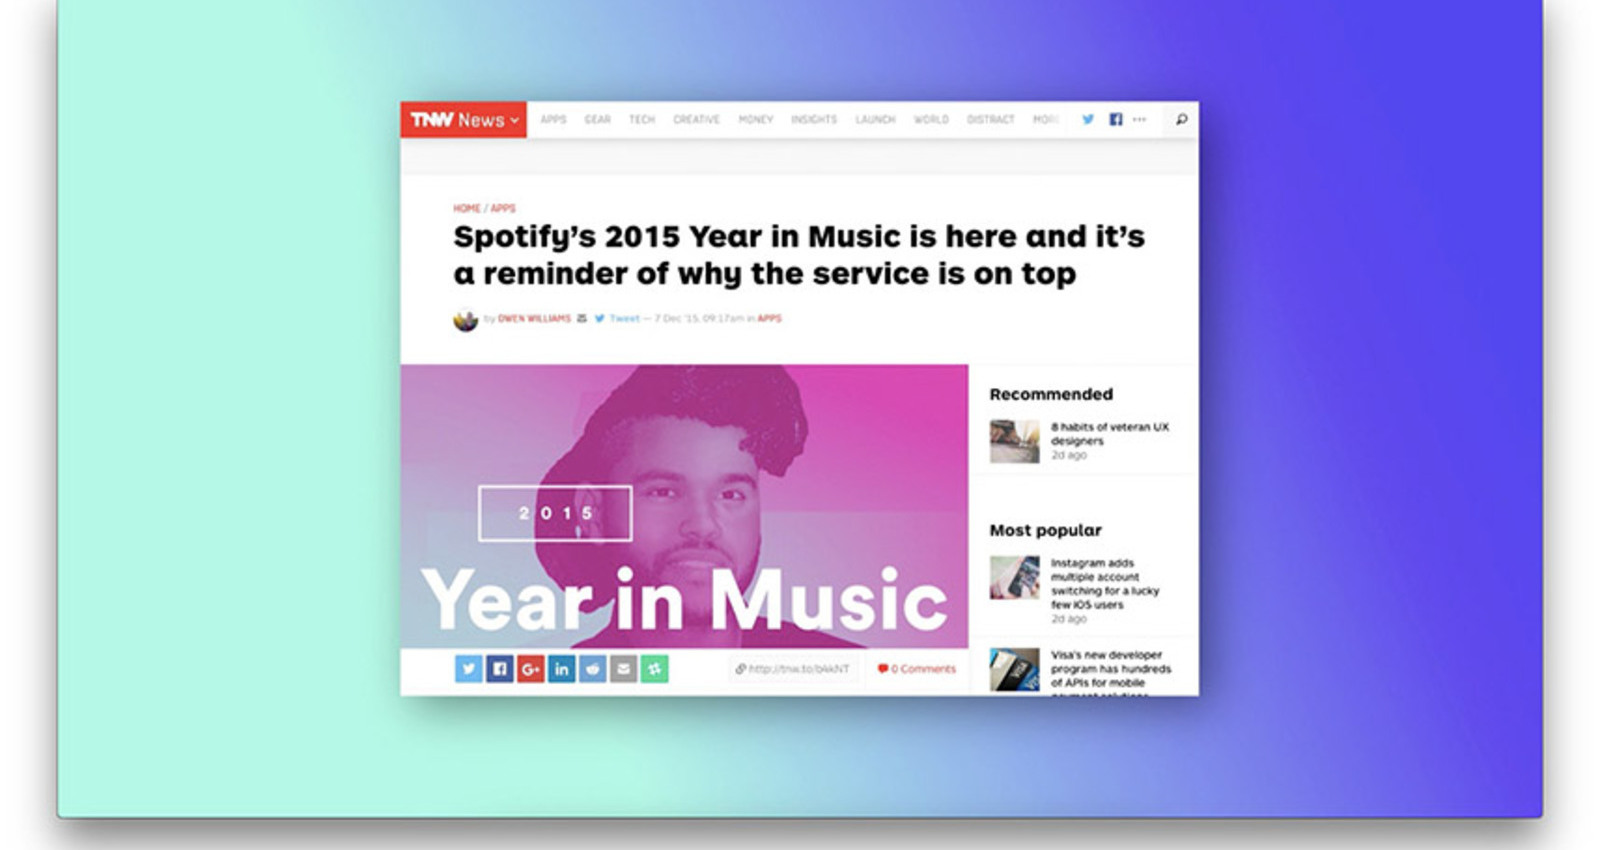 Spotify - Year in Music 2015